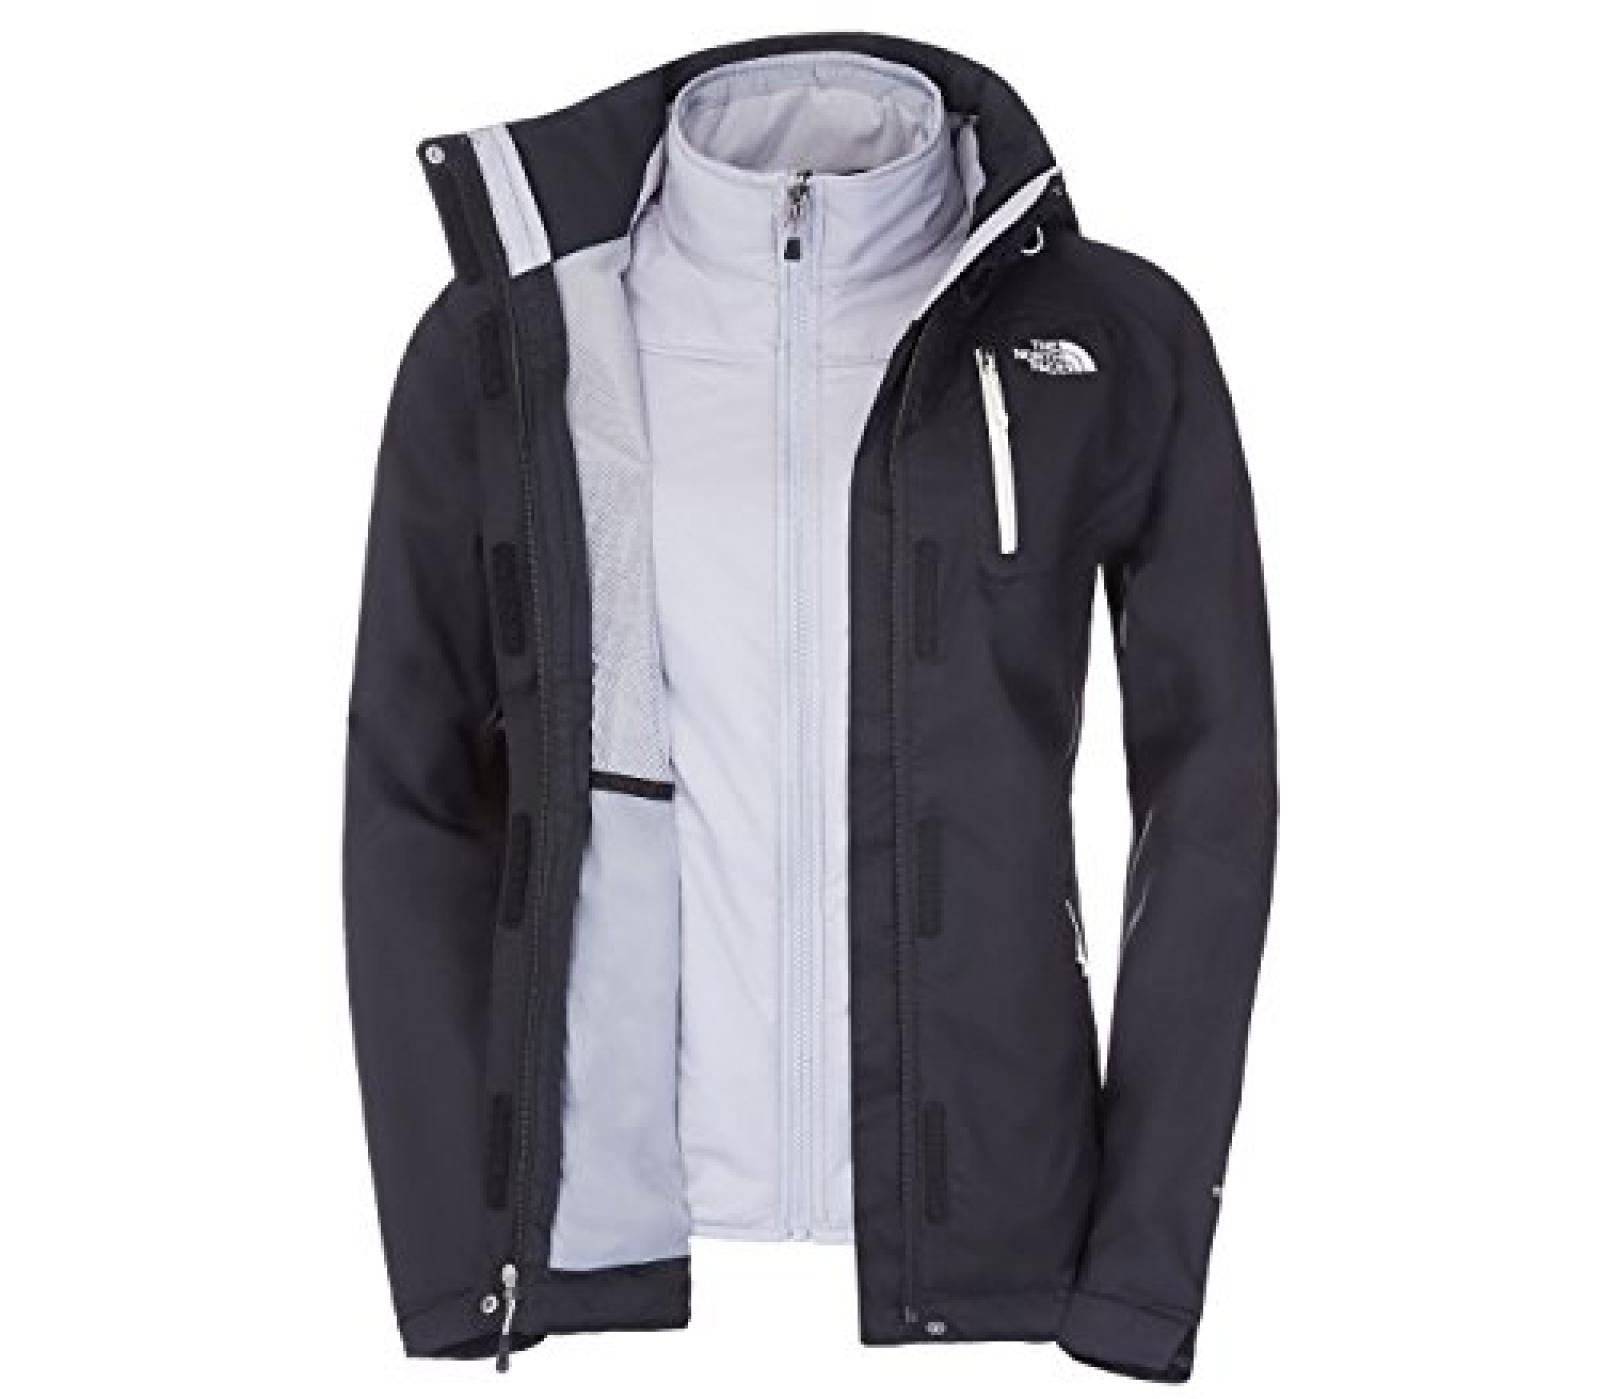 THE NORTH FACE Damen Jacke Zenith Triclimate